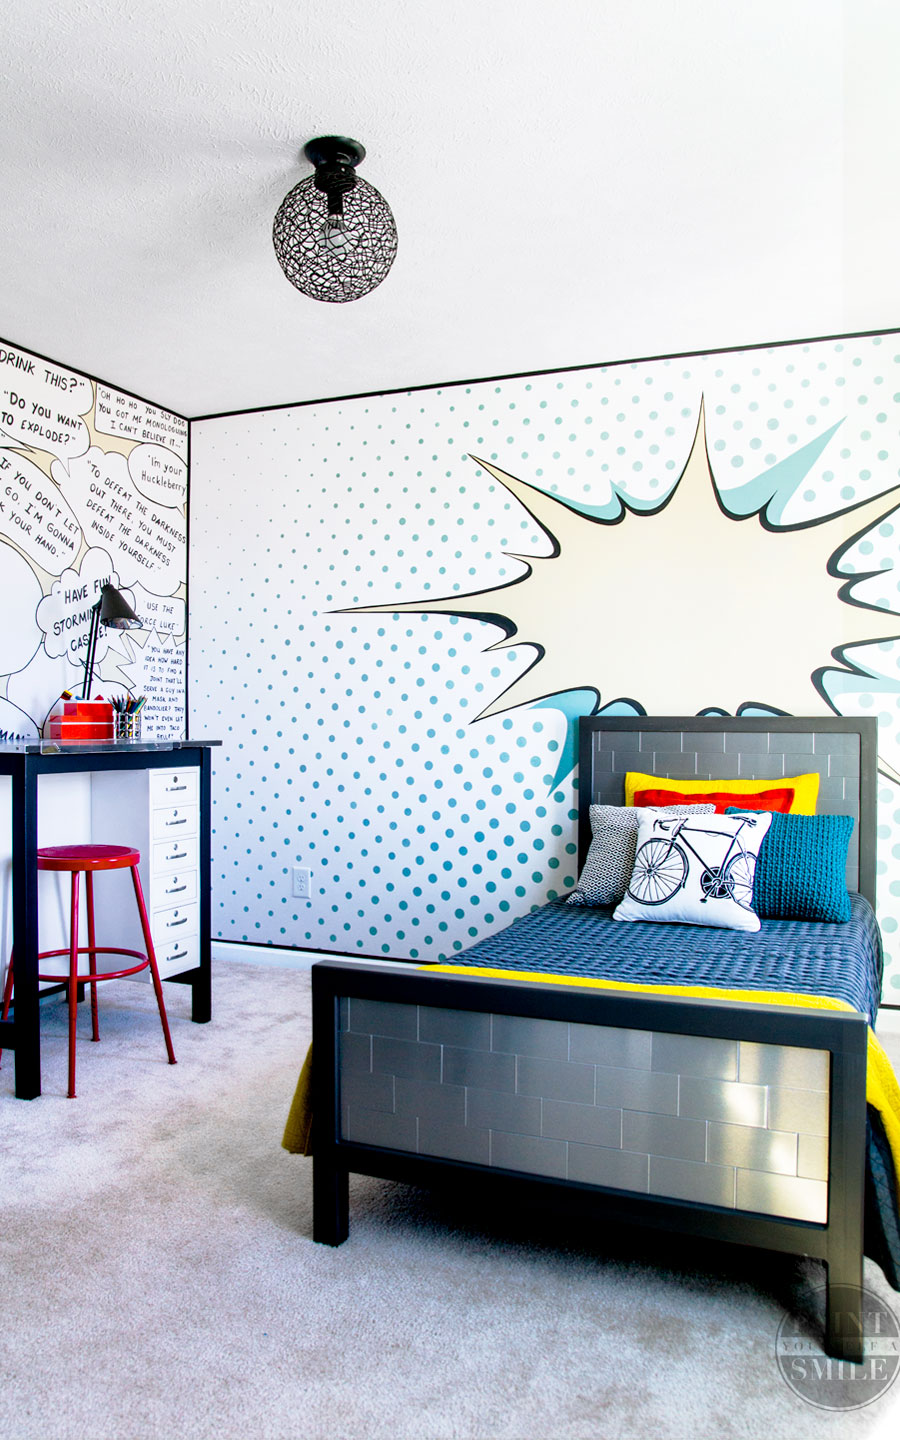 Pop Art Bedroom Make Over Reveal - Paint Yourself A Smile